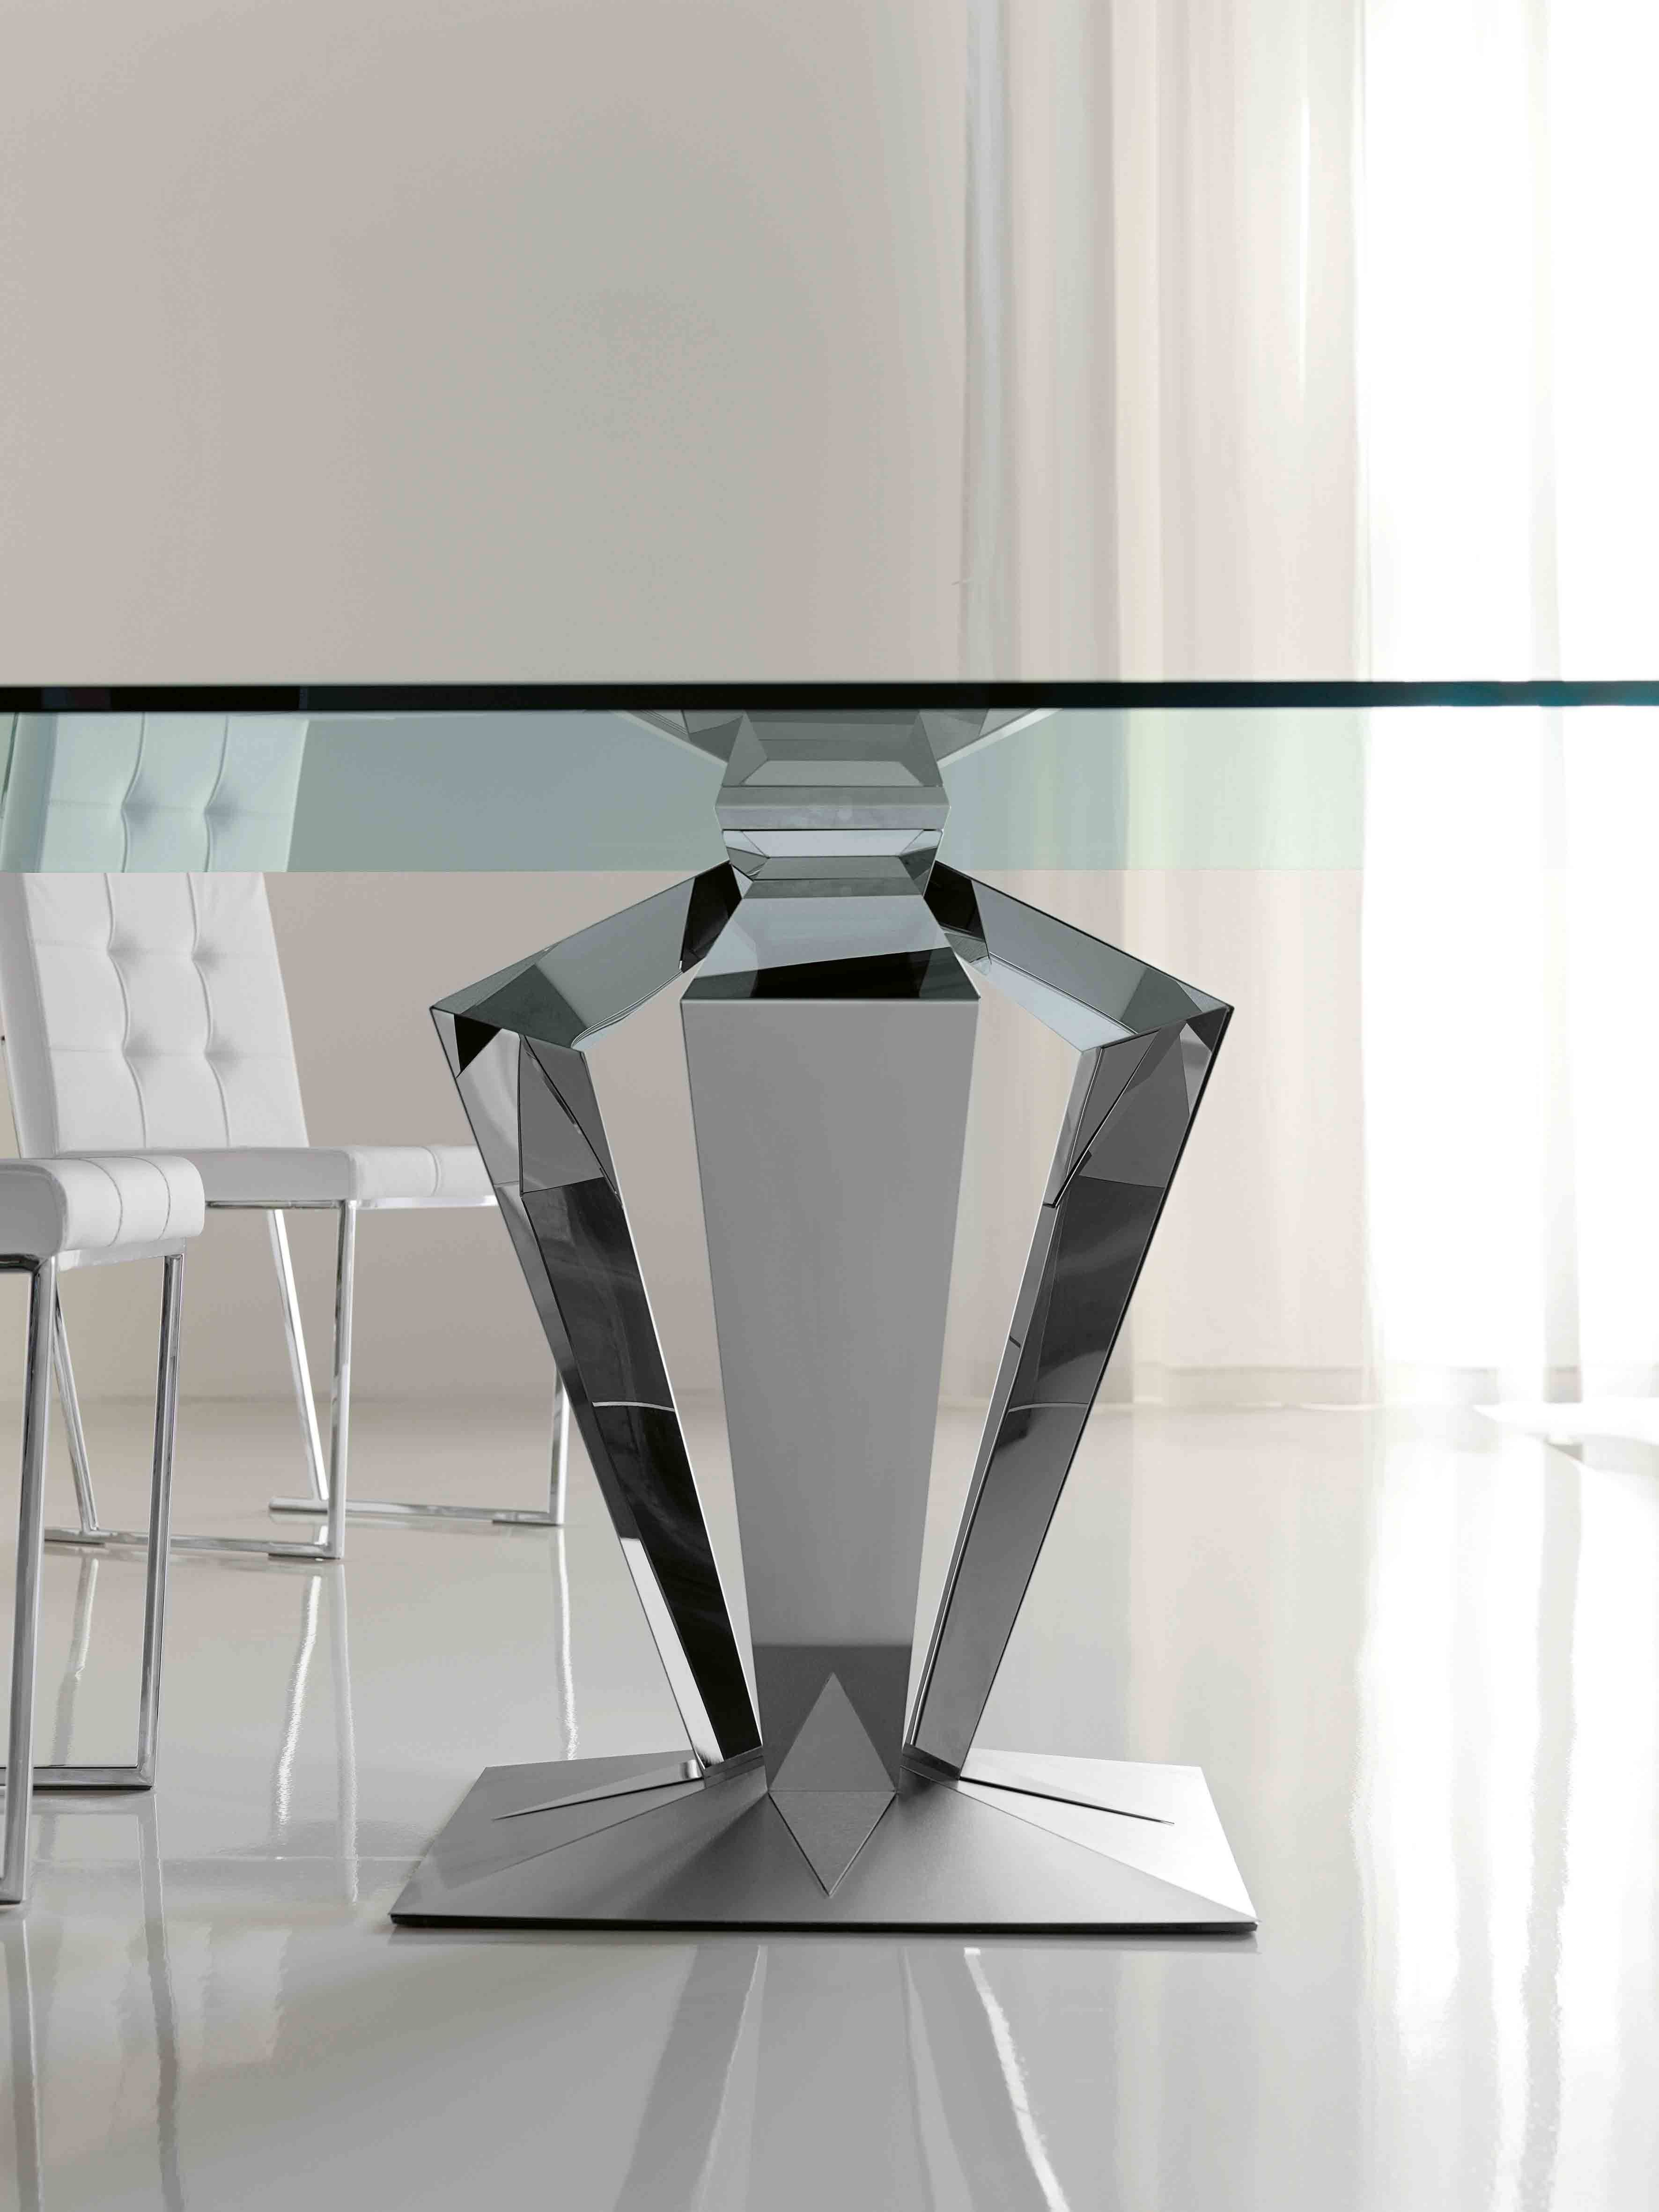 square glass dining table glamorous photo on interior design color ideas  with square glass dining table. square glass dining table glamorous photo on interior design color